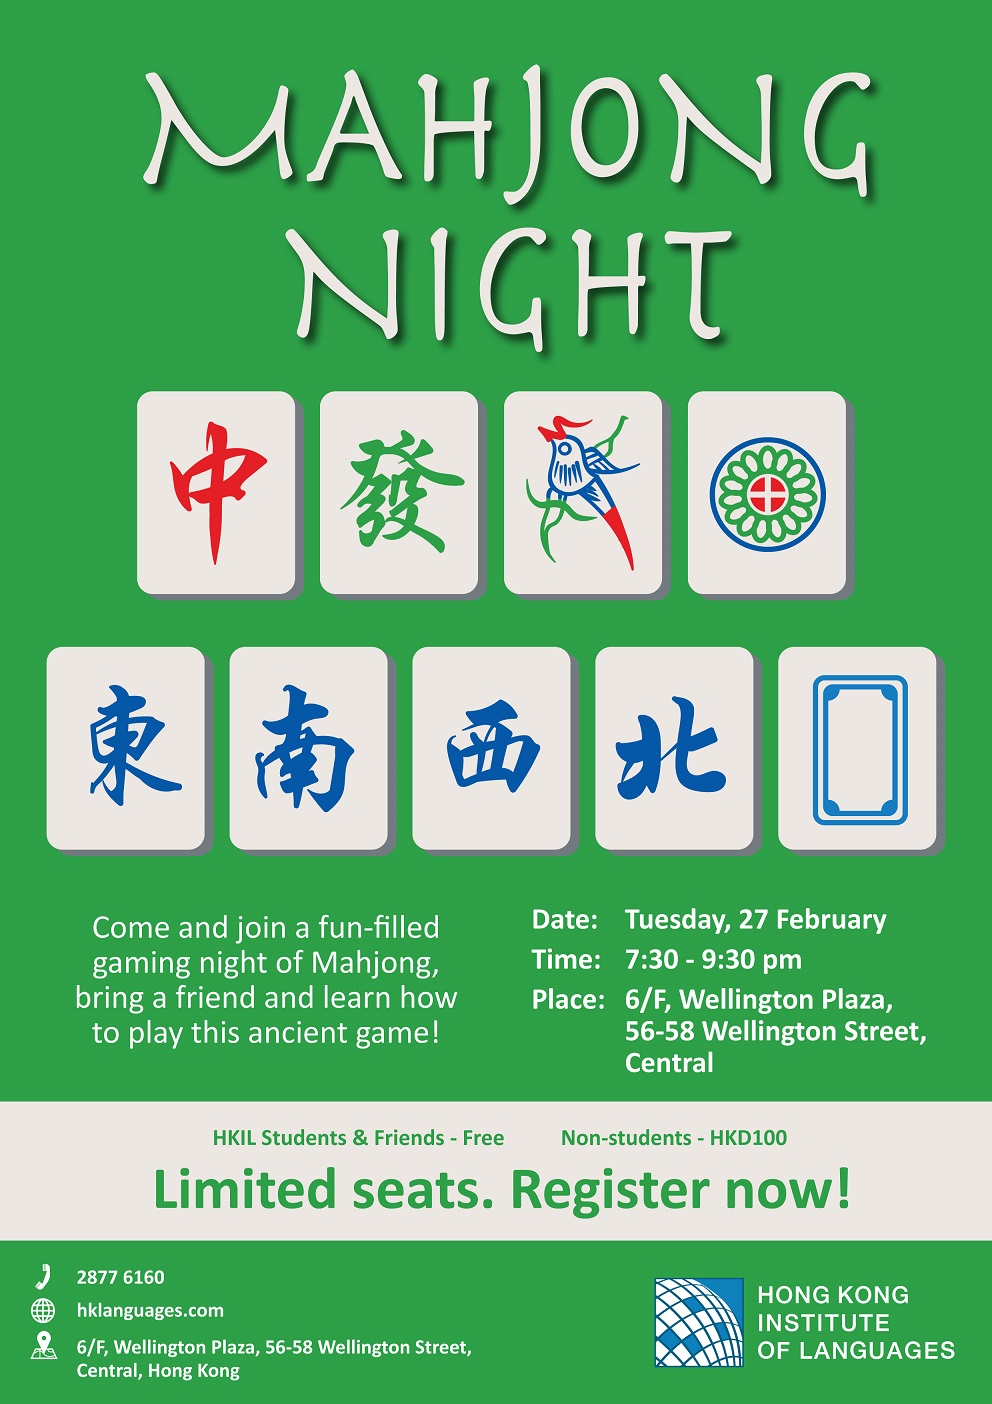 Mahjong Night, come and join us for a fun-filled gaming of Mahjong.